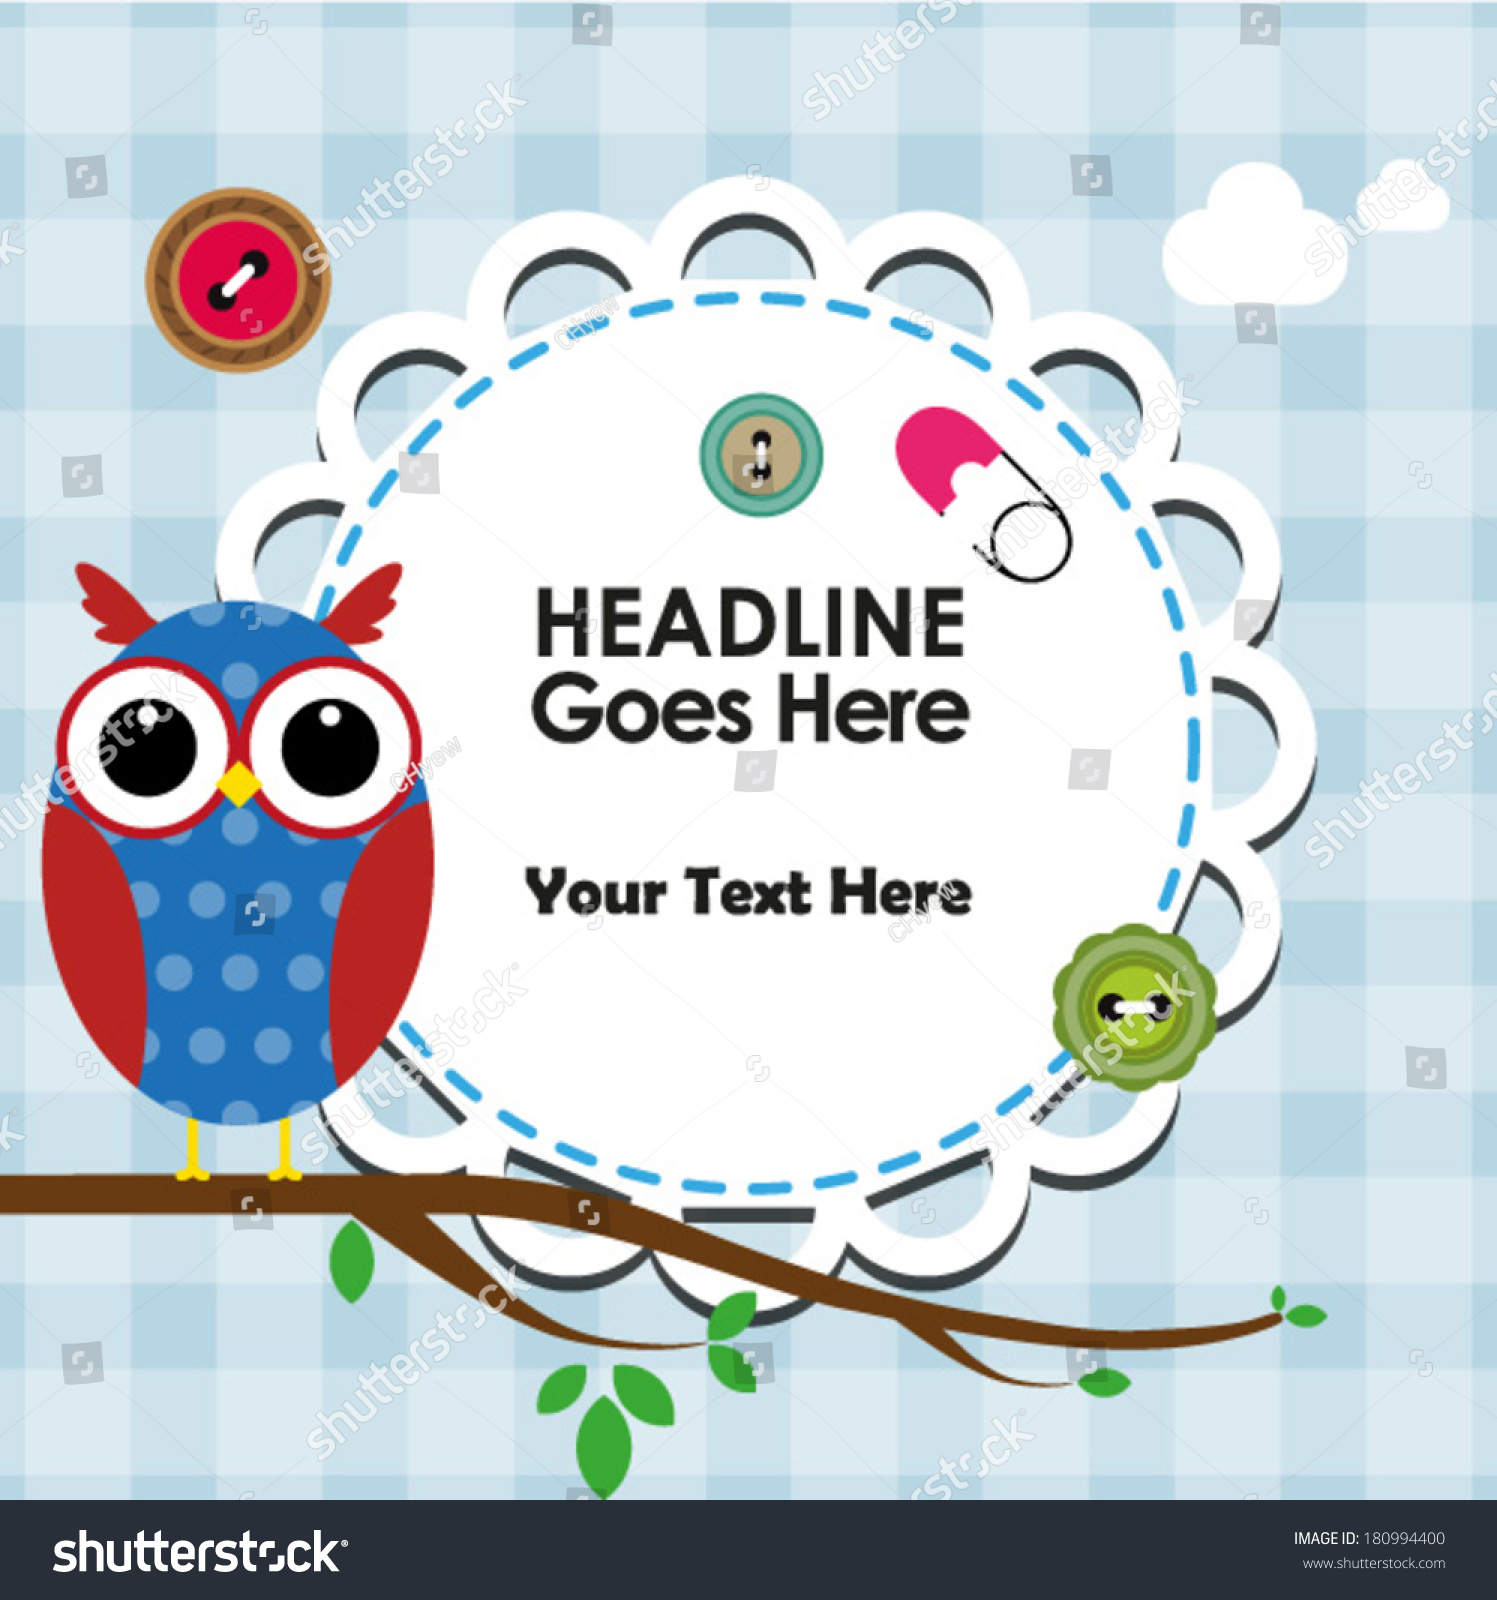 cute owl on branch frame text stock vector   shutterstock - cute owl on branch with frame for text